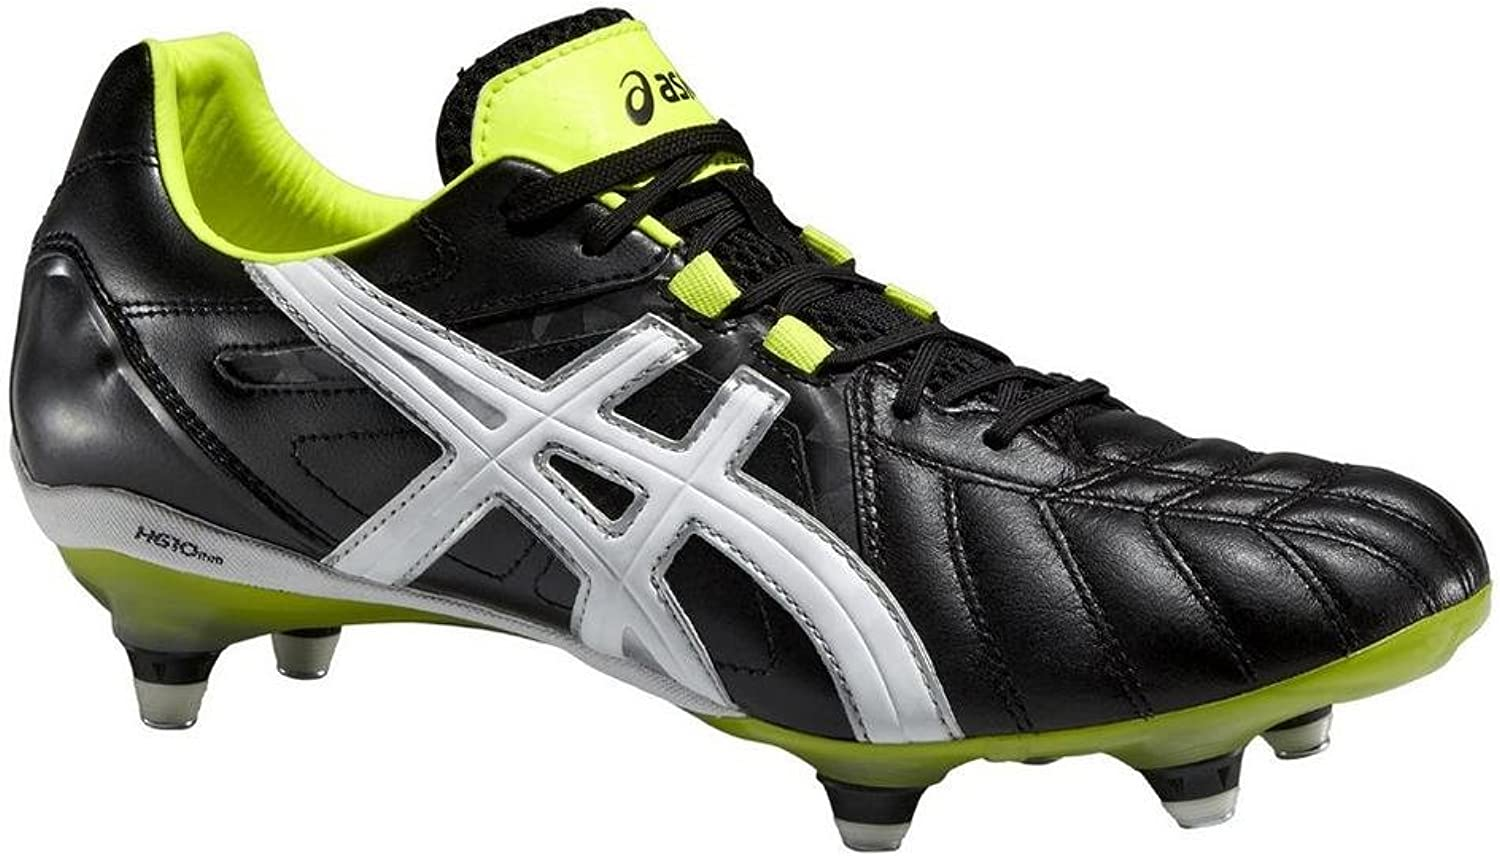 ASICS Gel-Lethal Tigreor 8 K IT Football Boots